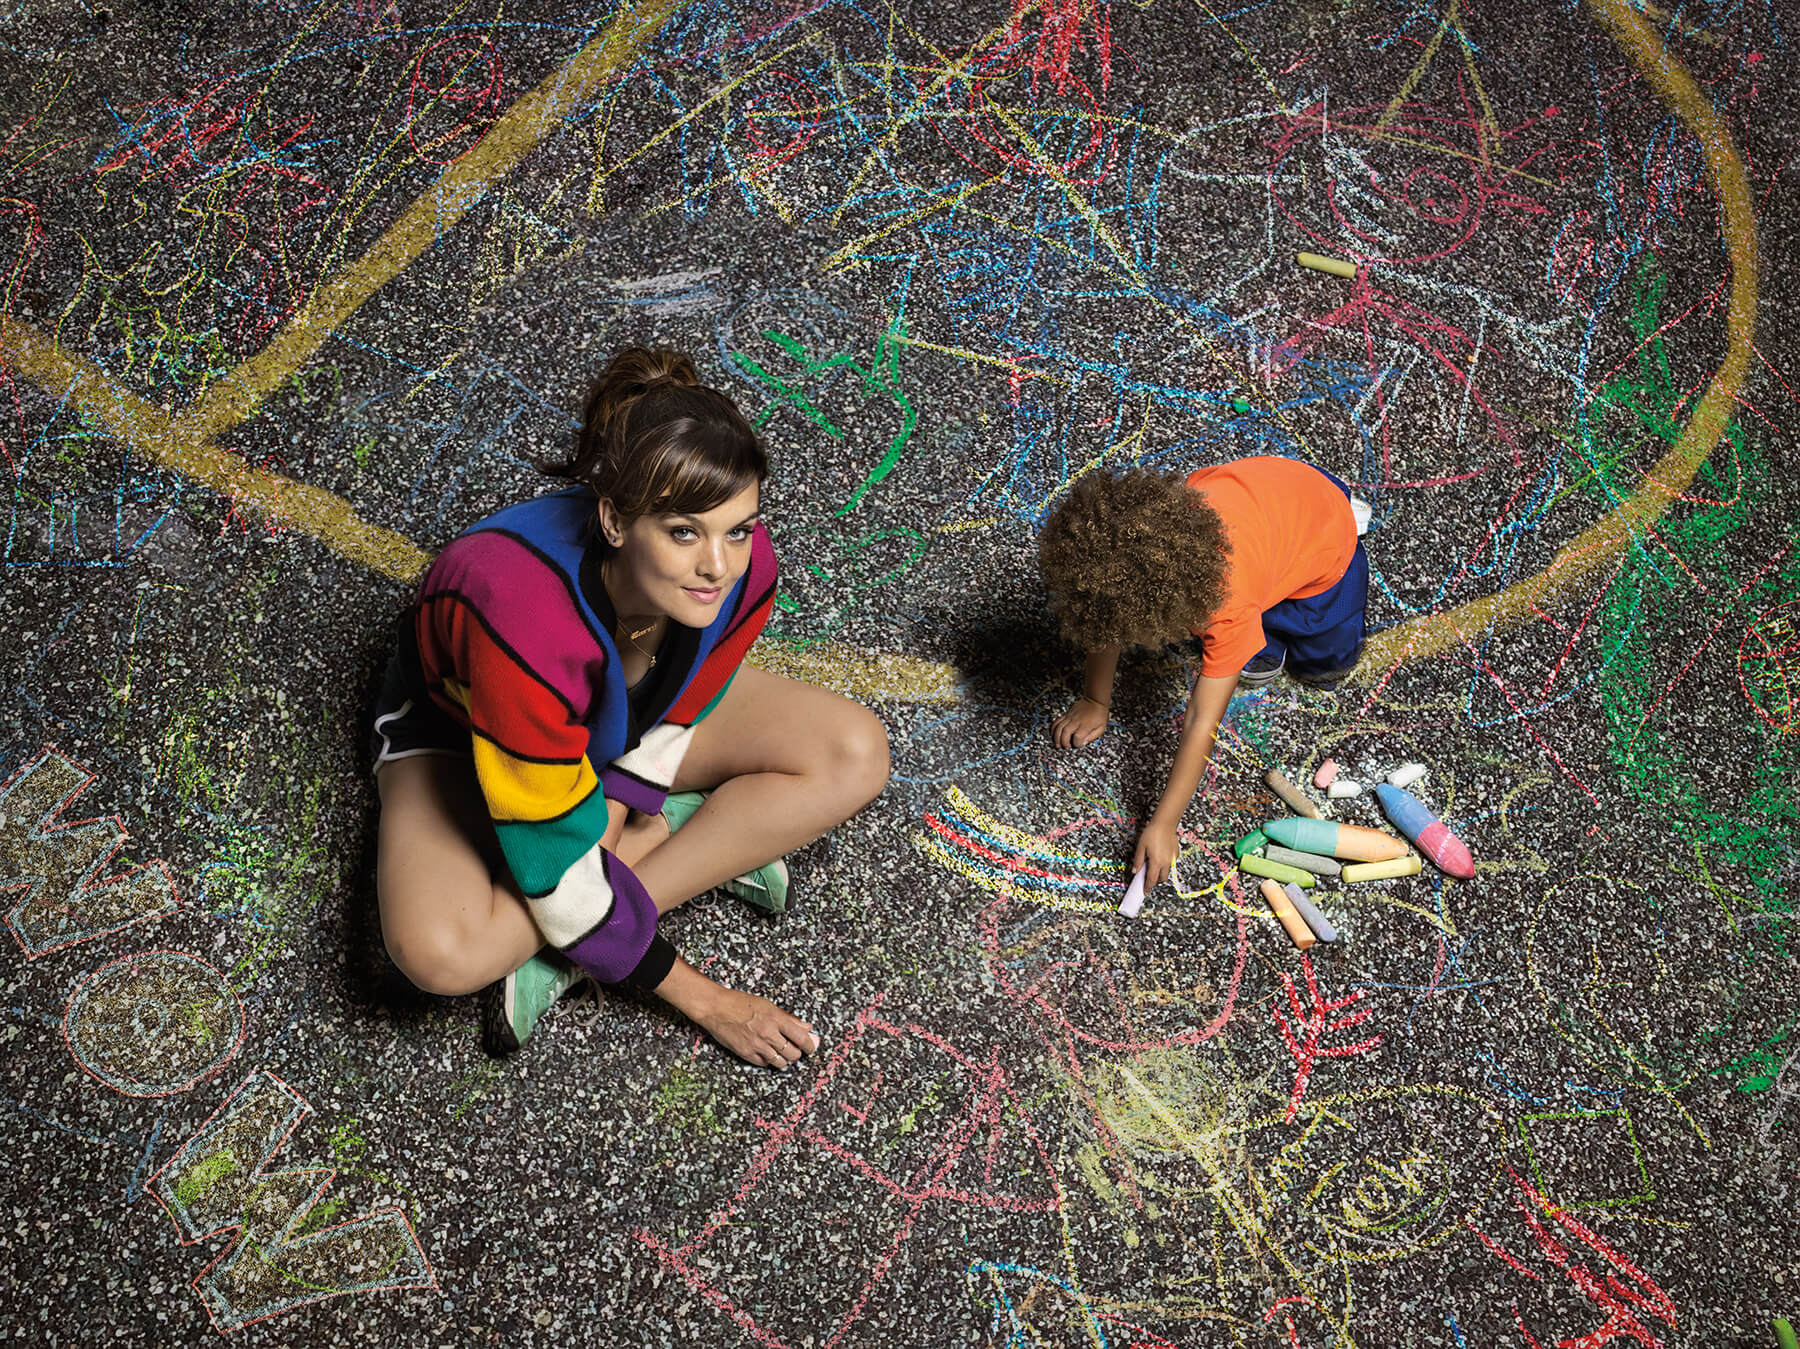 SMILF_S2_PLAYGROUND_CHALK2_300.jpg